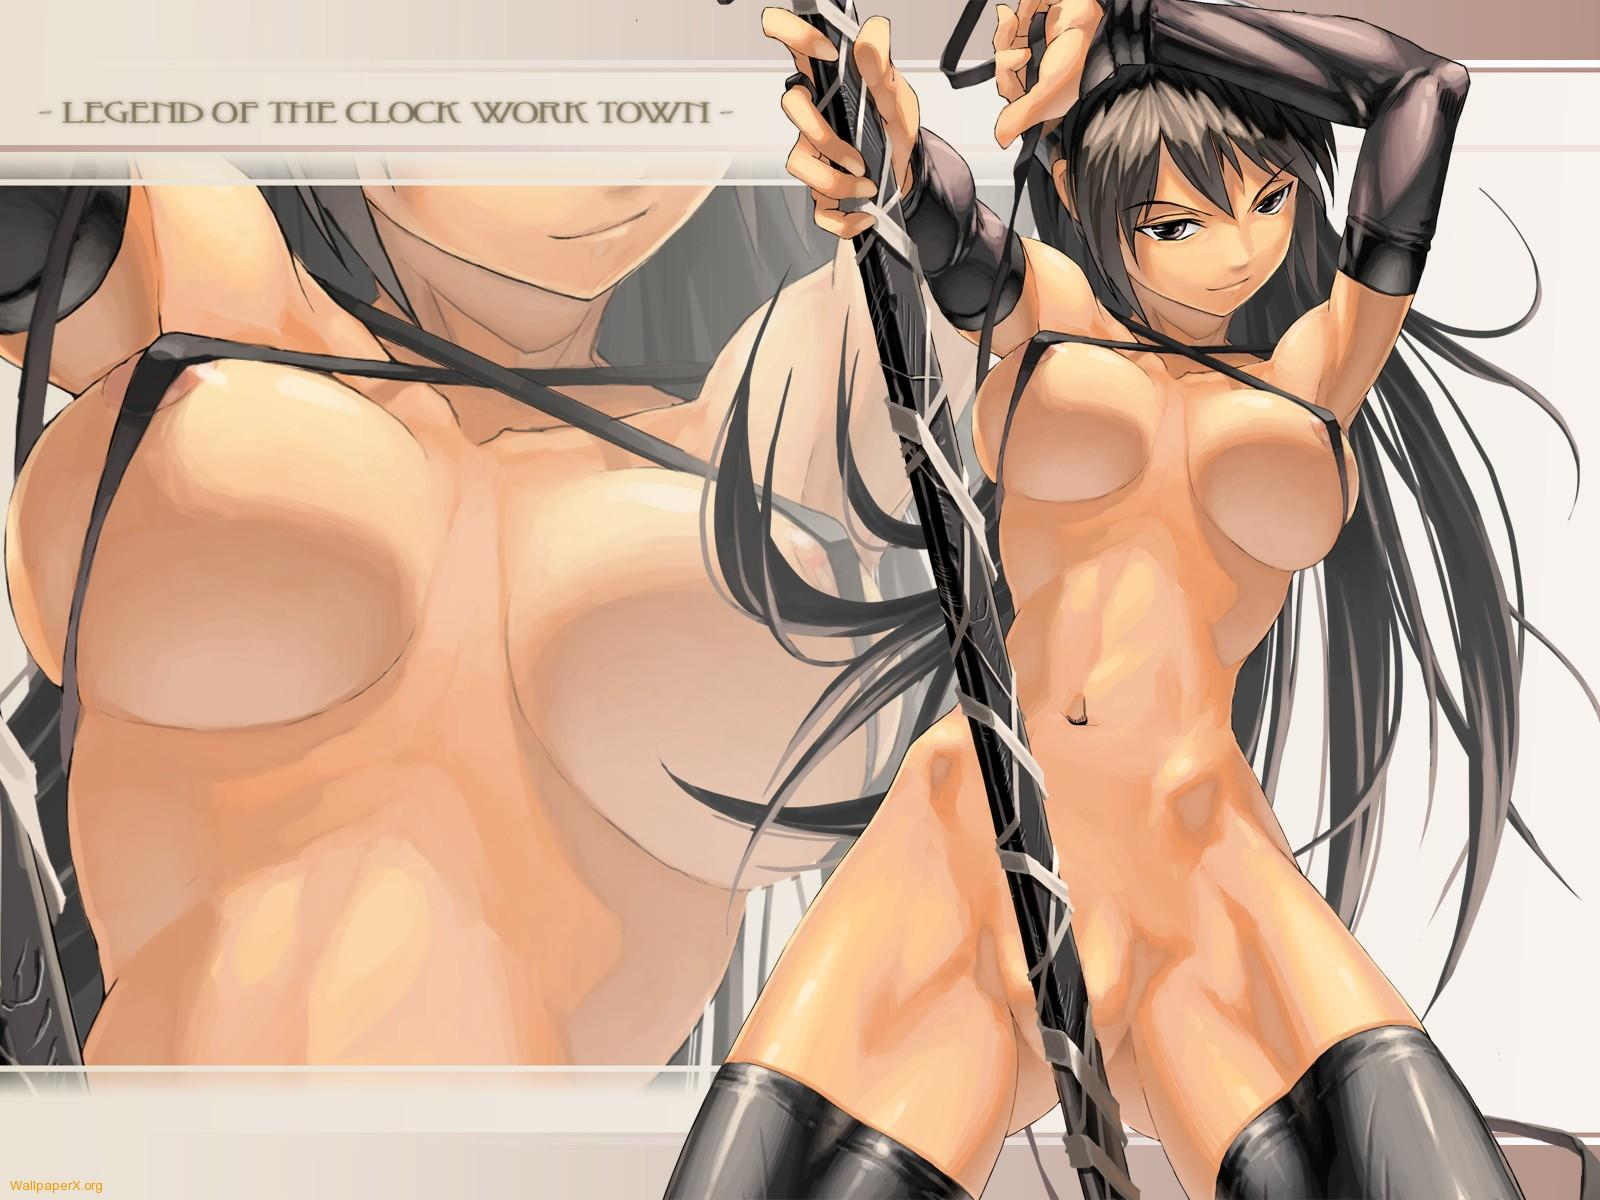 Hantai warrior girls images hentai vids